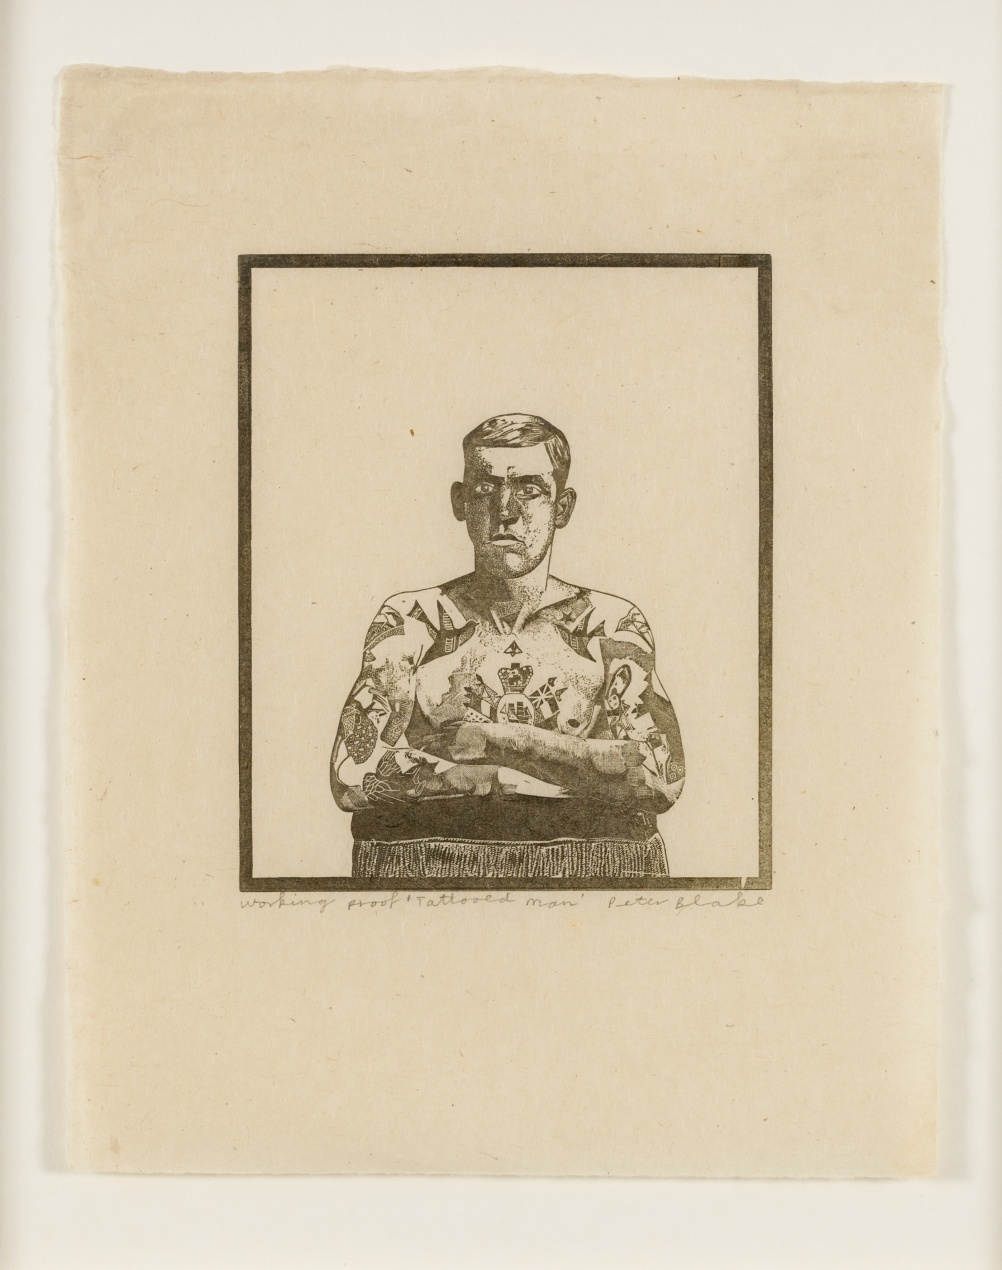 Tatooed Man, from 1974-1978 Side Show collection by Peter Blake